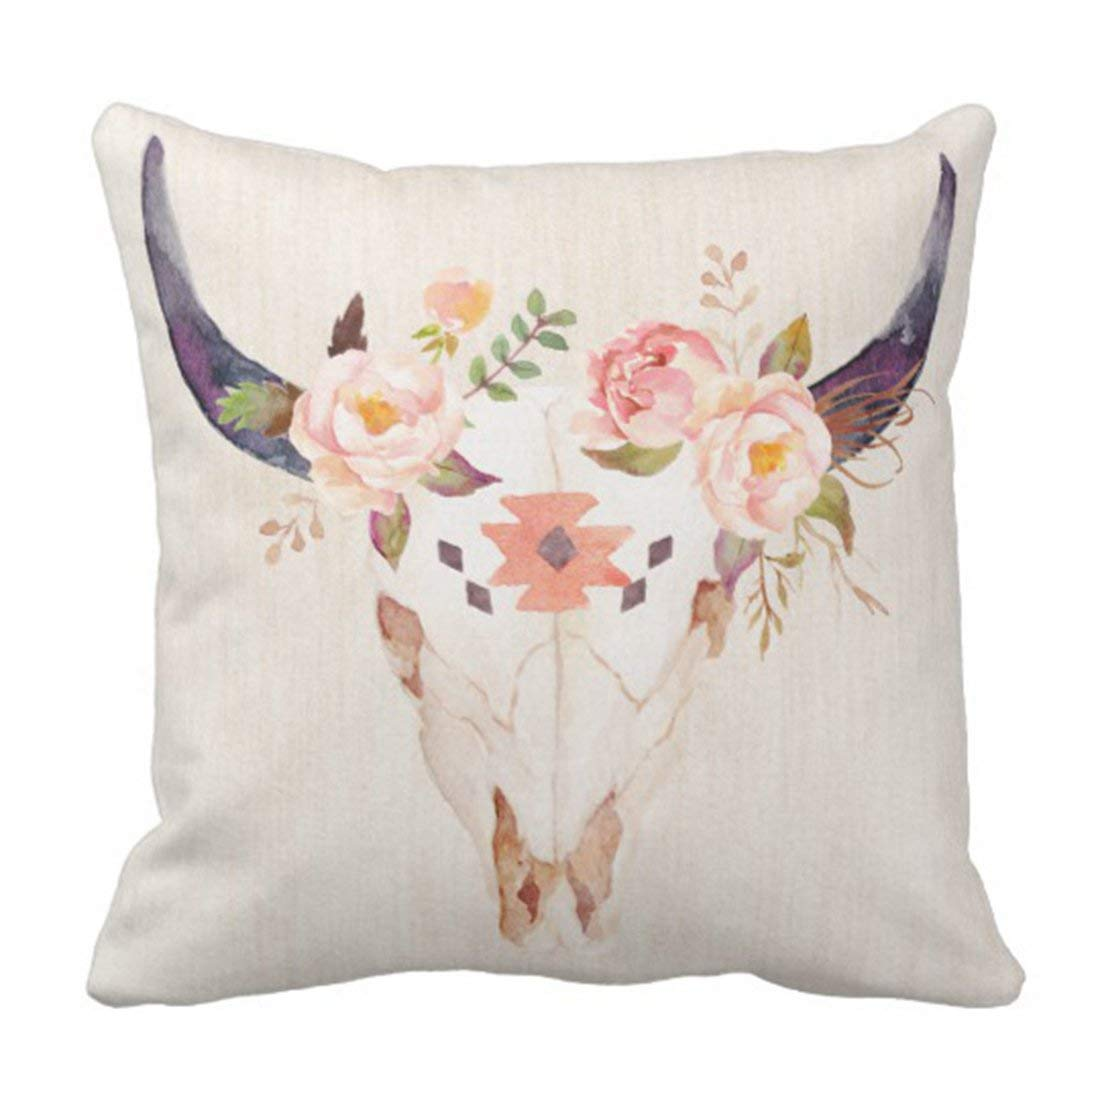 WOPOP Floral Boho Bull Head Skull Flowers Watercolor Rose Pillowcase Cover 16x16 inch